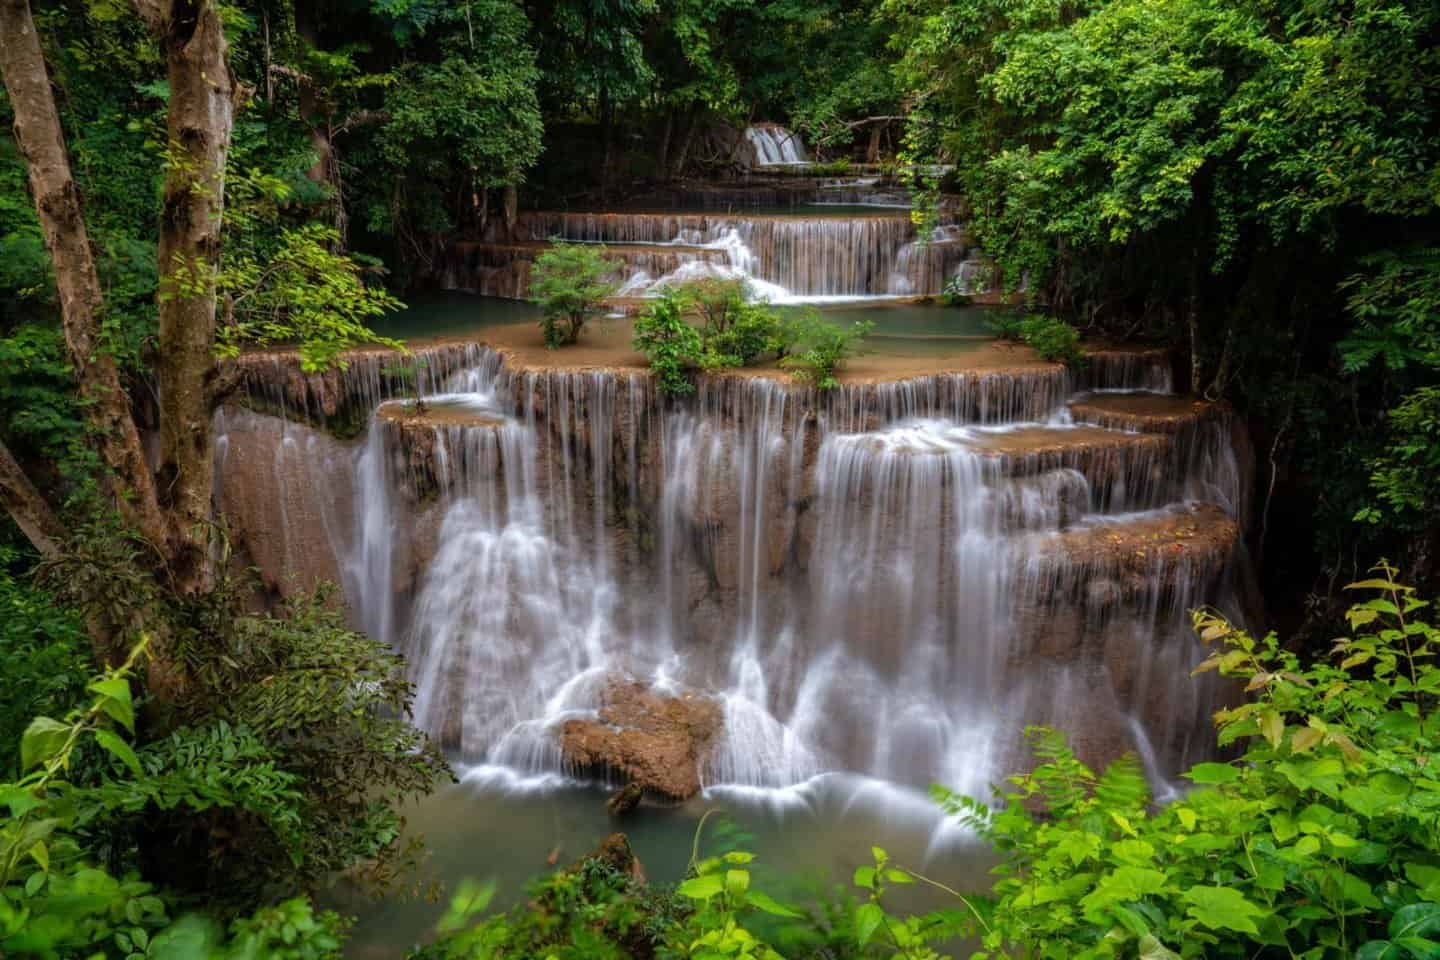 Tier 4 (Chat Kaew) is the highest drop at Huay Mae Khamin Falls